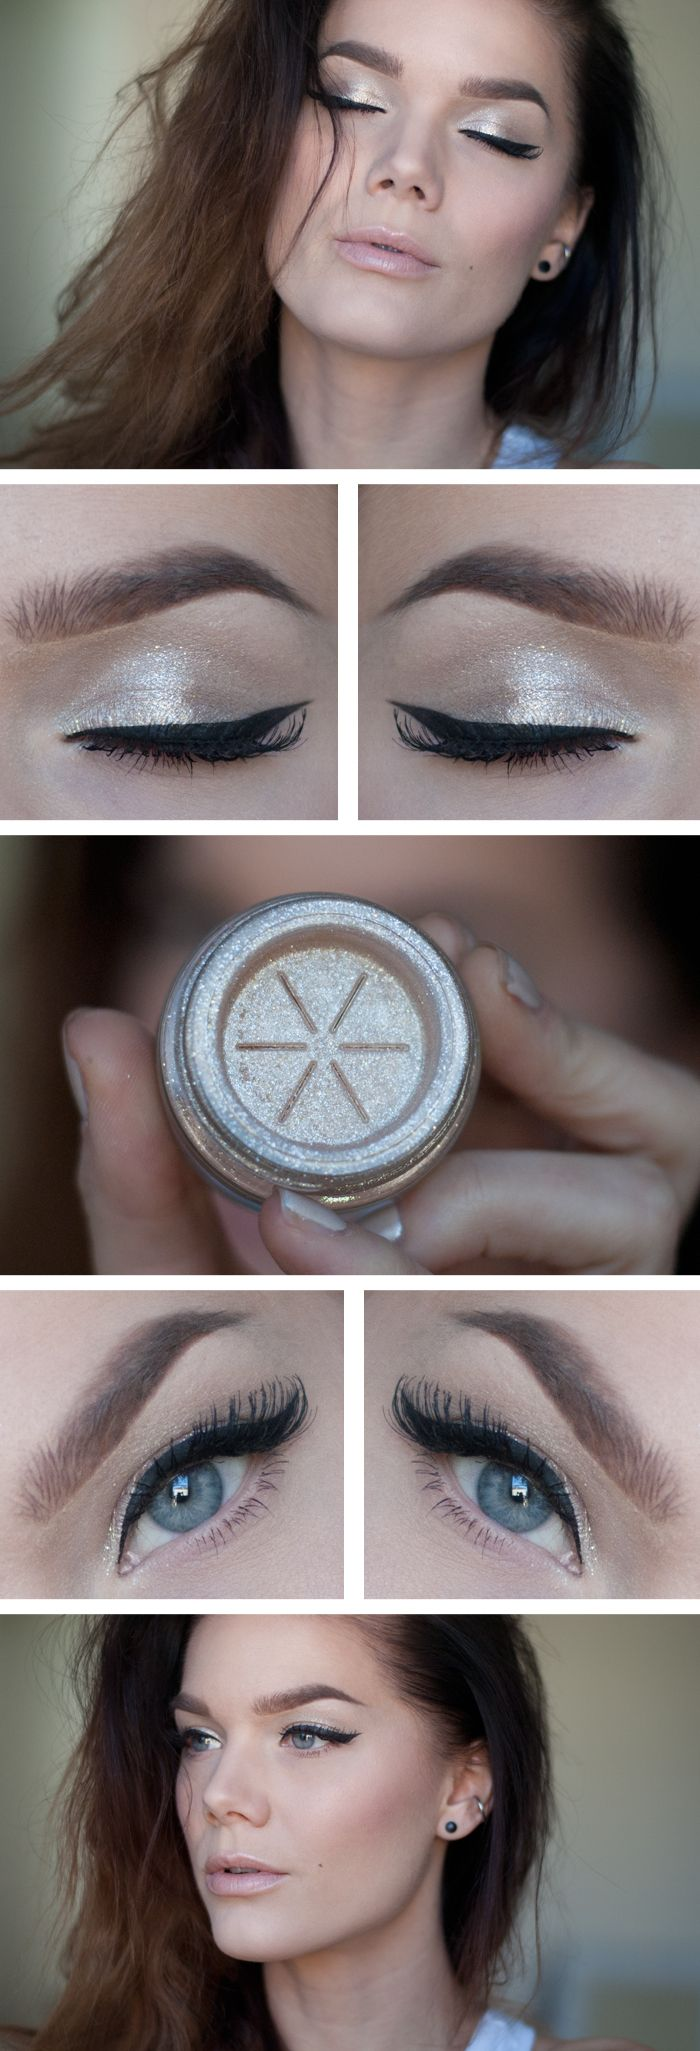 """Today's Look : """"Nude Beam"""" -Linda Hallberg (Too Faced Glamour dust in Nude Beam, eyeliner, a light pink lip and voila! a beautiful minimal makeup look.) 11/05/13"""